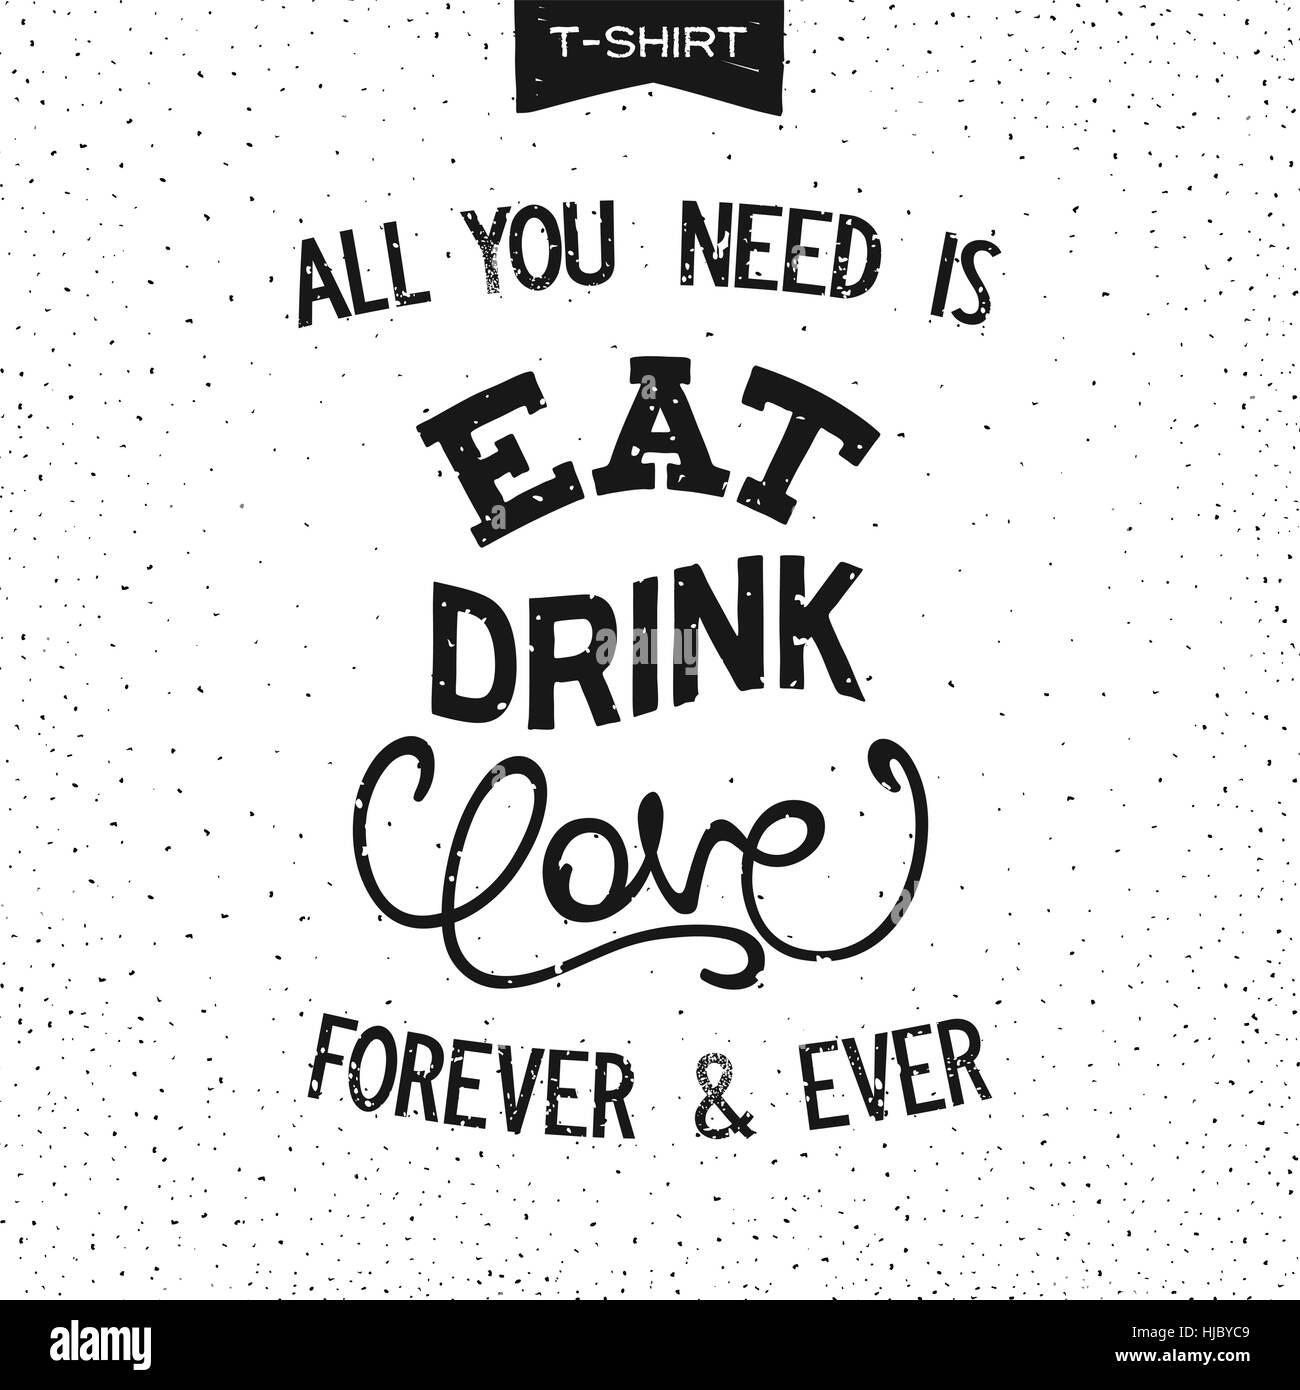 Grunge print design for T-Shirt with slogan - ALL YOU NEED IS EAT, DRINK, LOVE. Handwritten lettering composition. Vector illustration Stock Vector